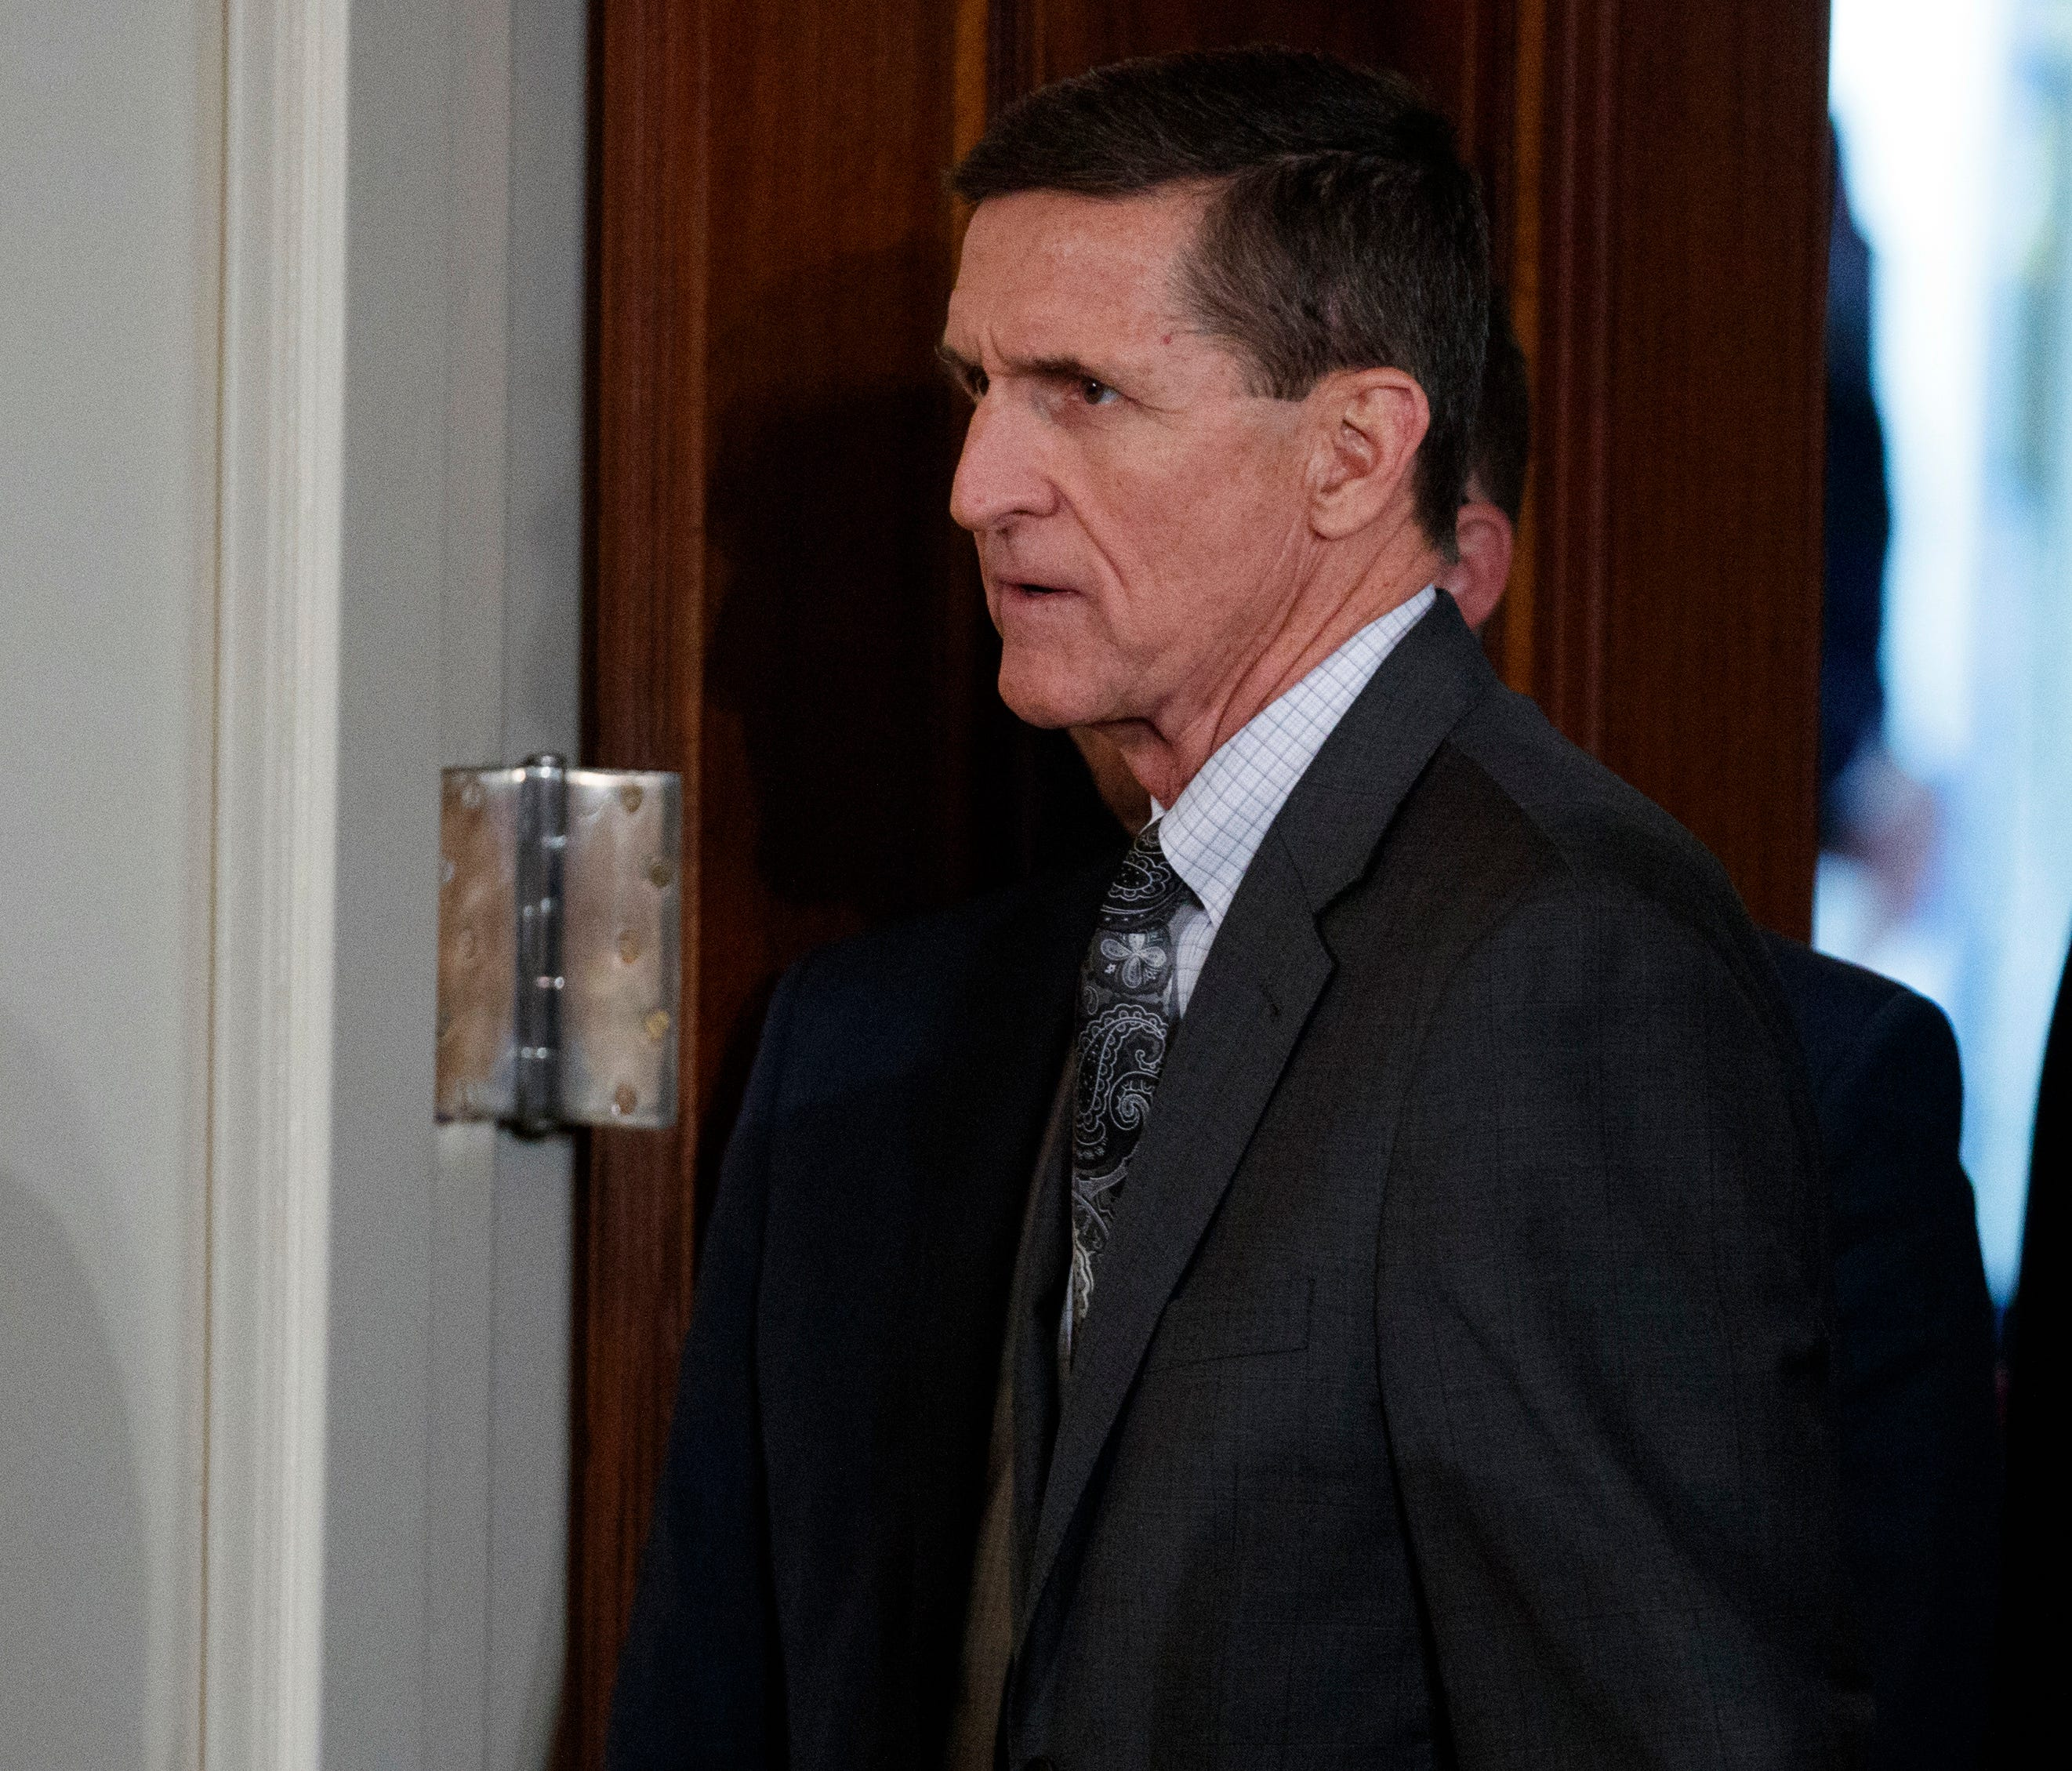 FILE - In this Feb. 13, 2017 file photo, Mike Flynn arrives for a news conference in the East Room of the White House in Washington. Targeted in widening investigations of his foreign entanglements, President Donald Trump's former national security a